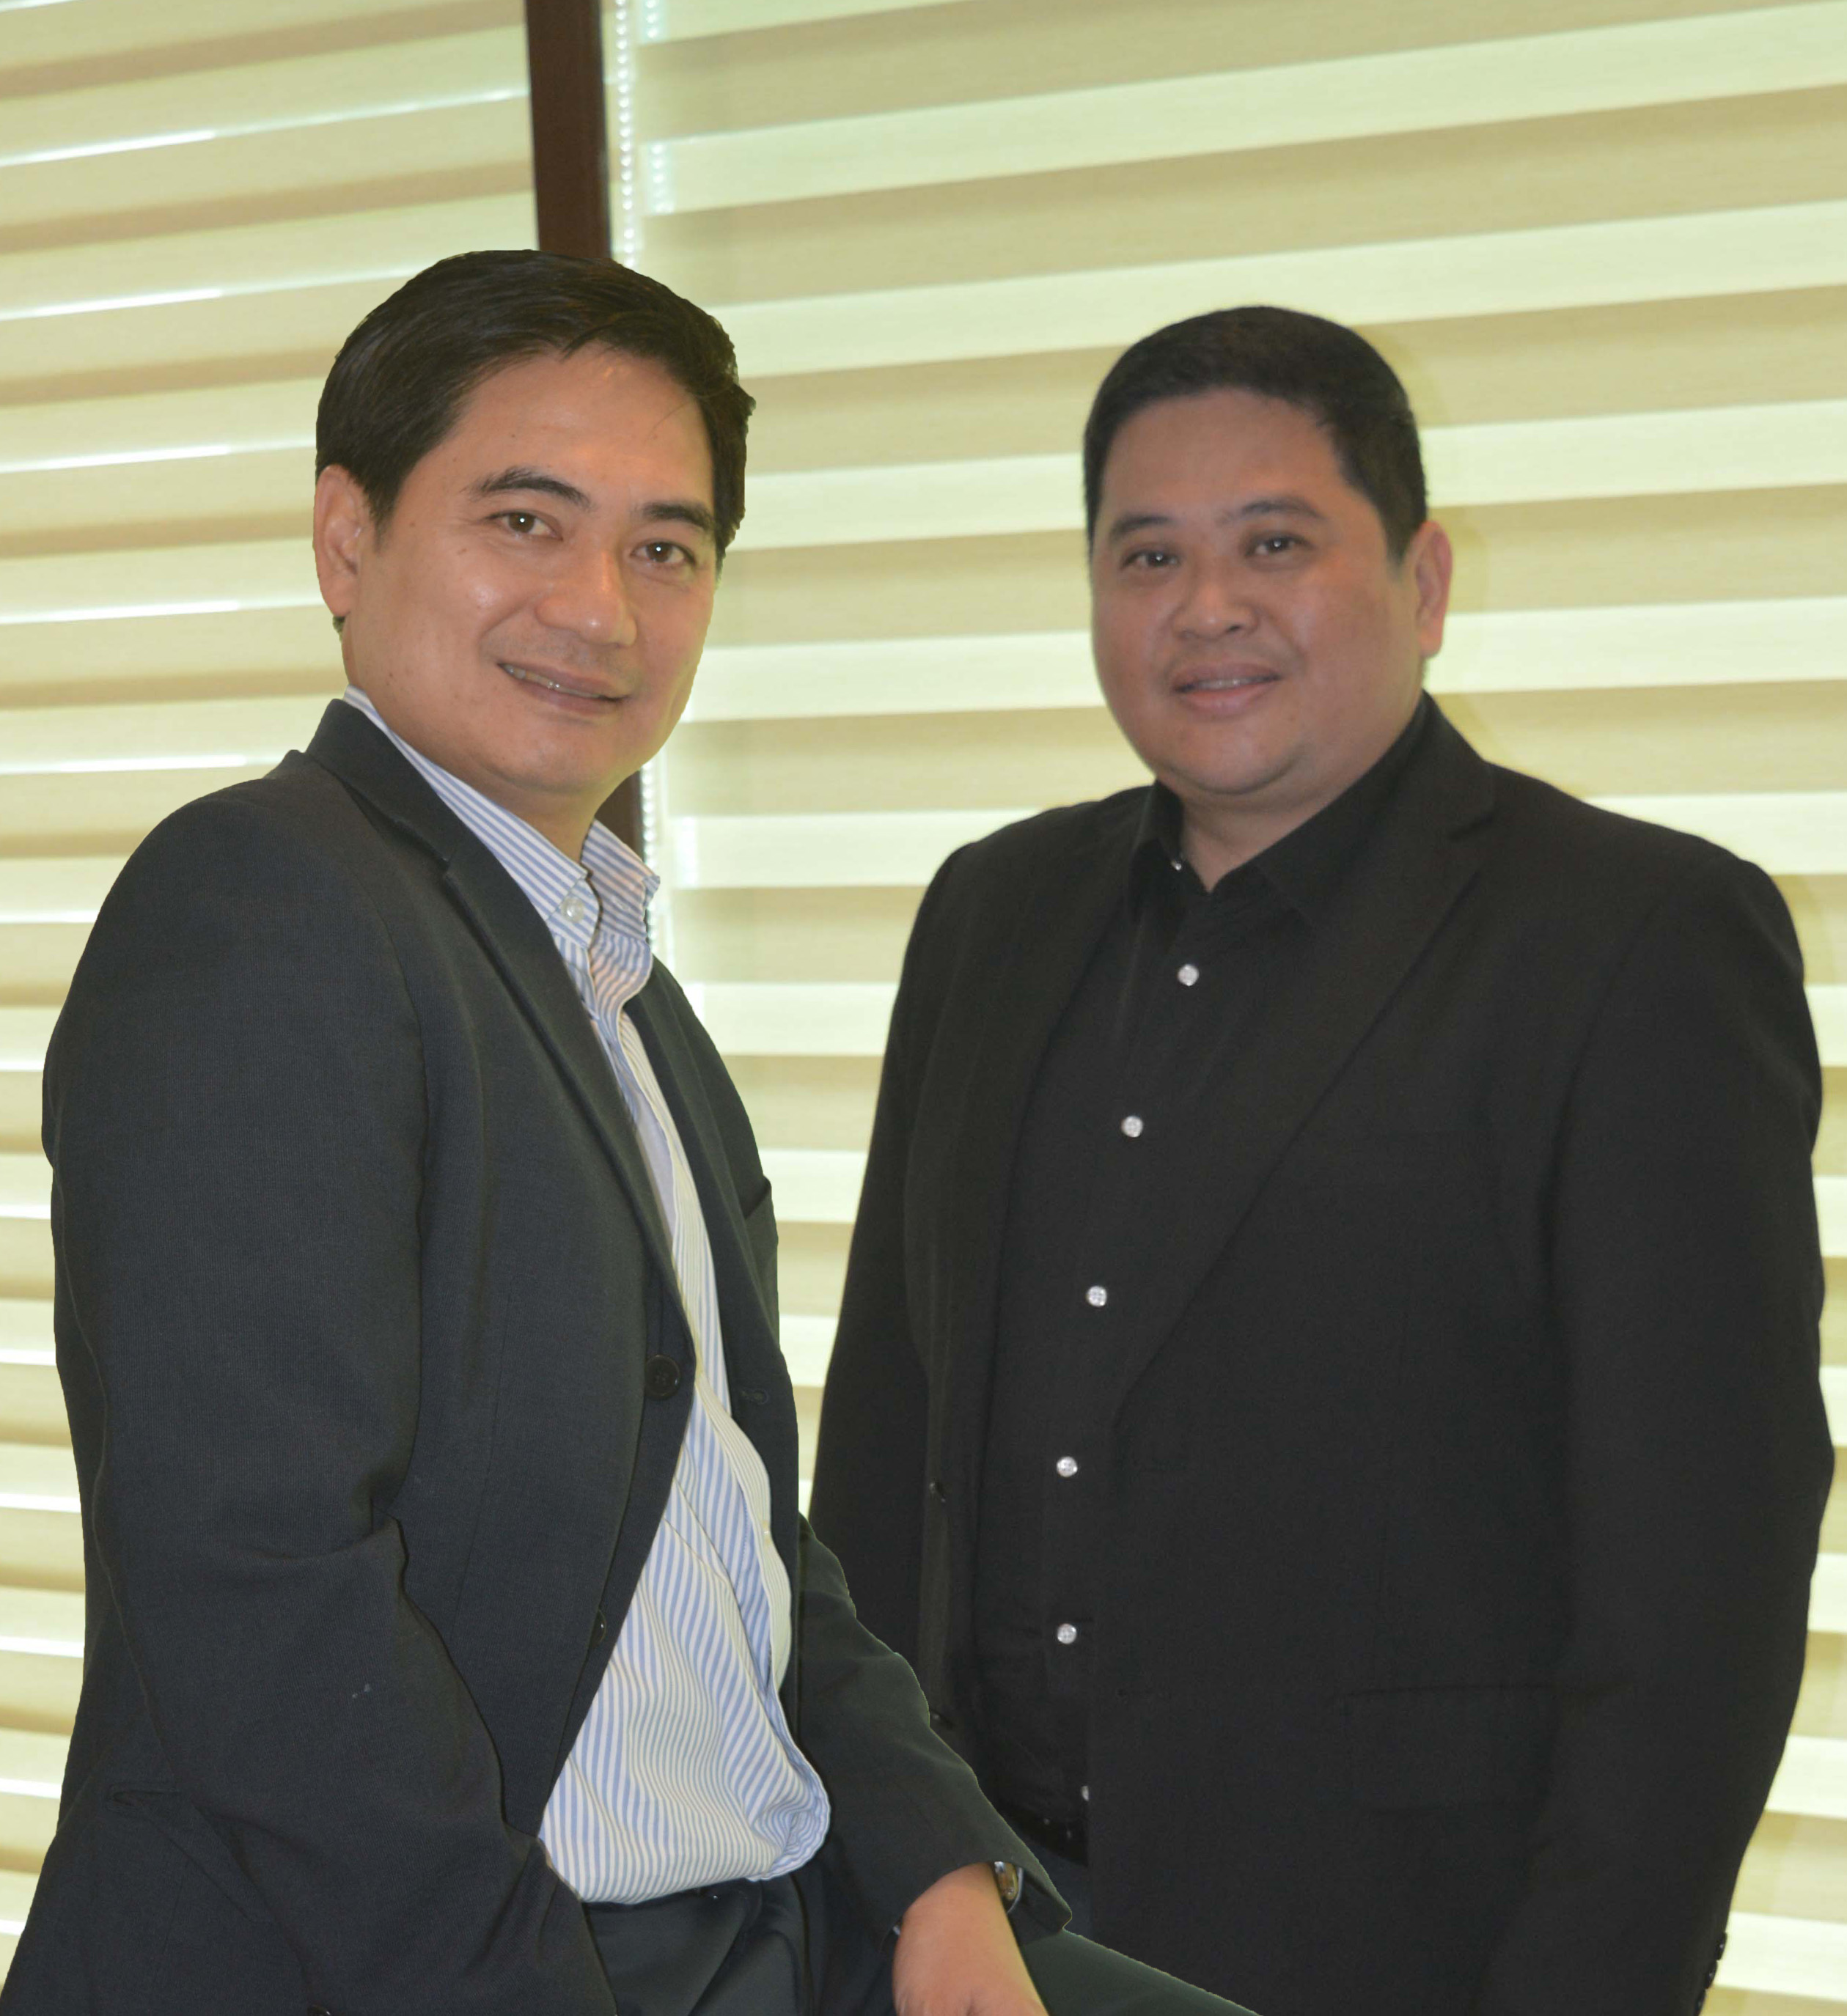 Armand Batalla and Erwyn Alcomendras: Working like entreps